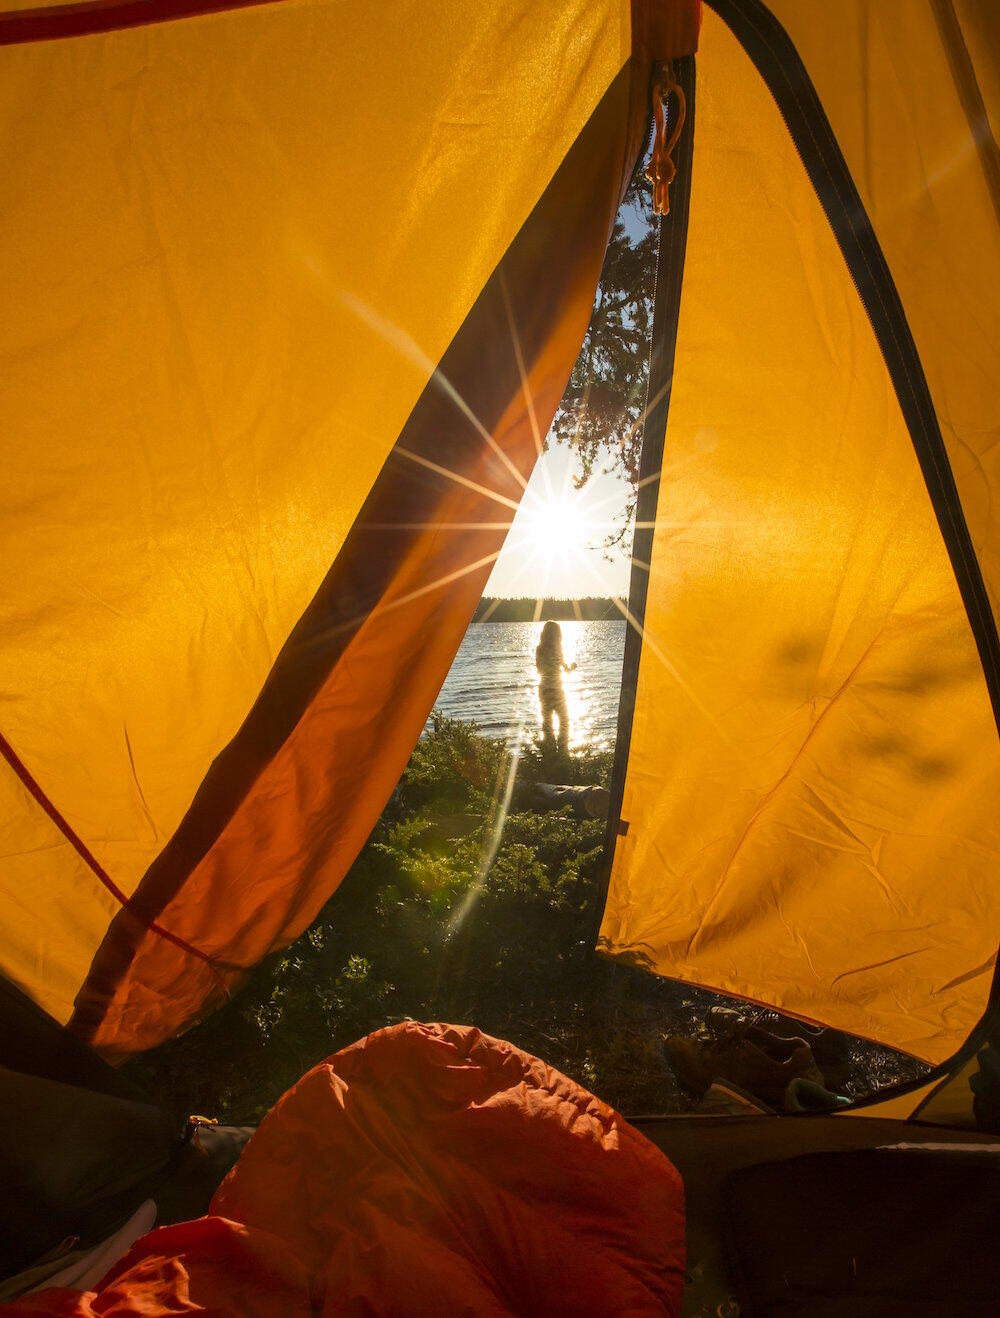 View of lake from inside of a tent